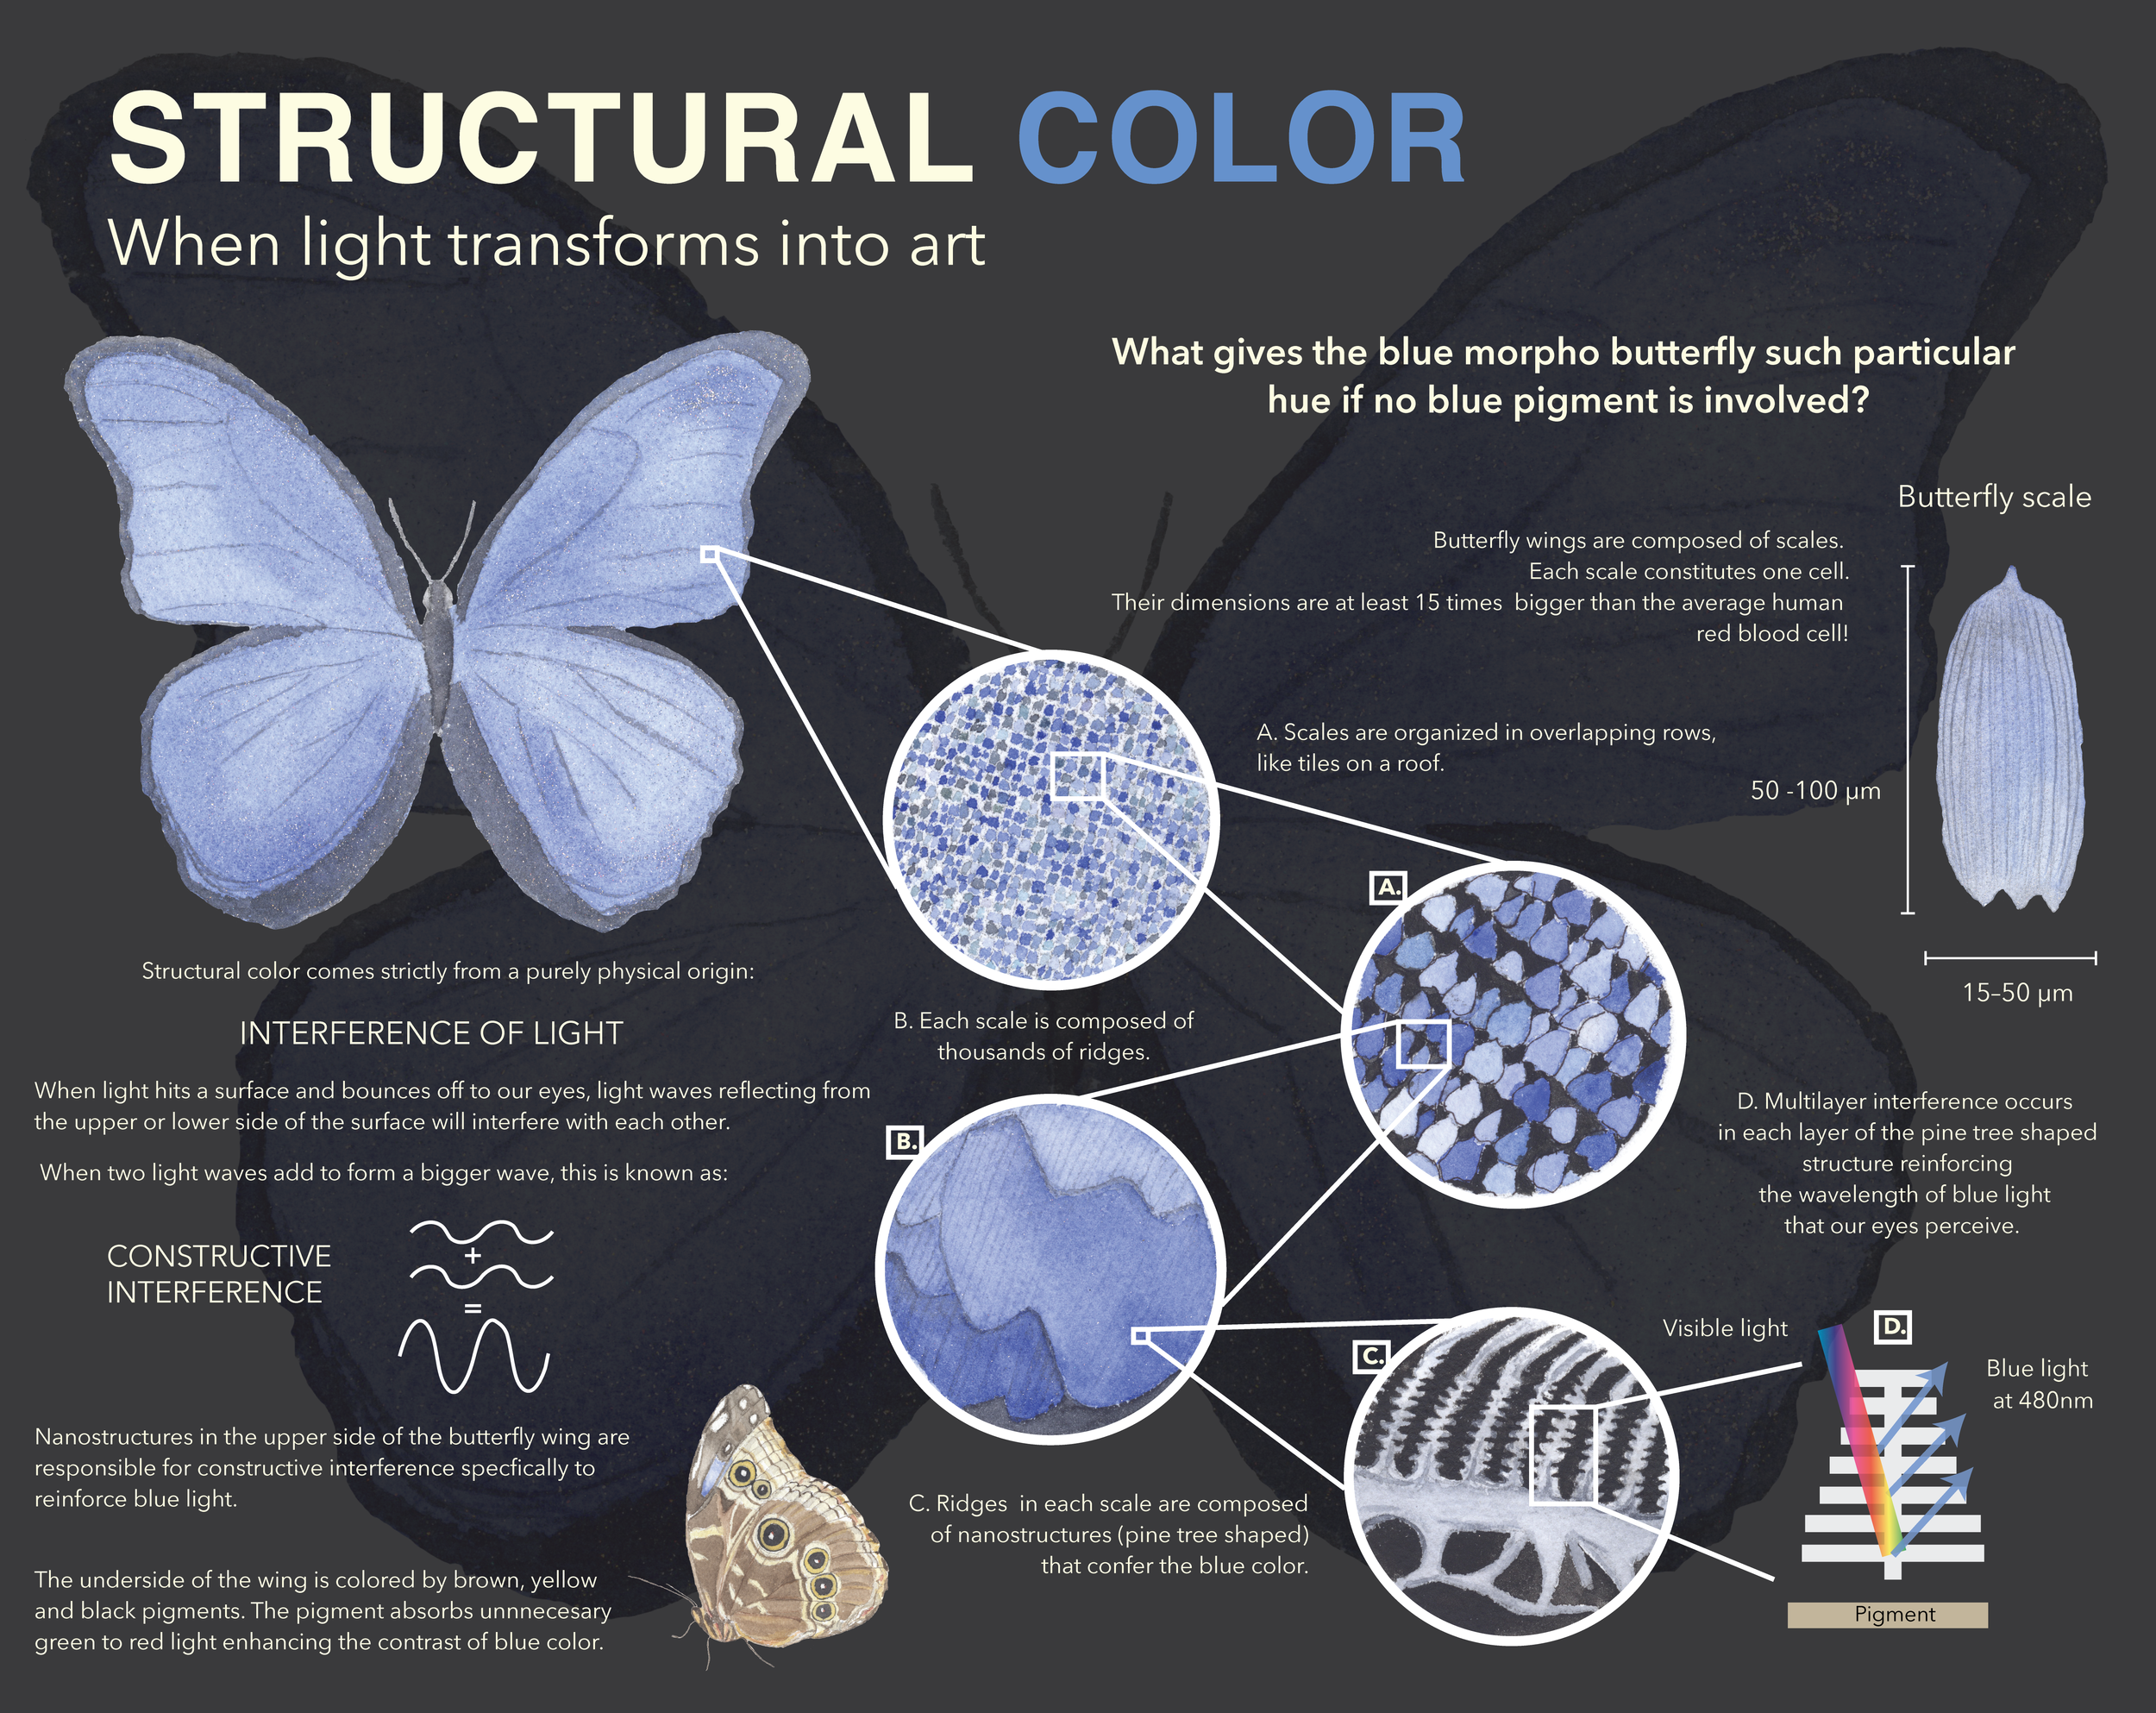 Sources:    Photophysics of Structural Color in the Morpho Butterflies      Mechanisms of structural colour in the Morpho butterfly: cooperation of regularity and irregularity in an iridescent scale      What gives the Morpho Butterfly its magnificent blue?    Further readings:    Wavelength-selective and anisotropic light-diffusing scale on the wing of the Morpho butterfly      Photonic structures in biology